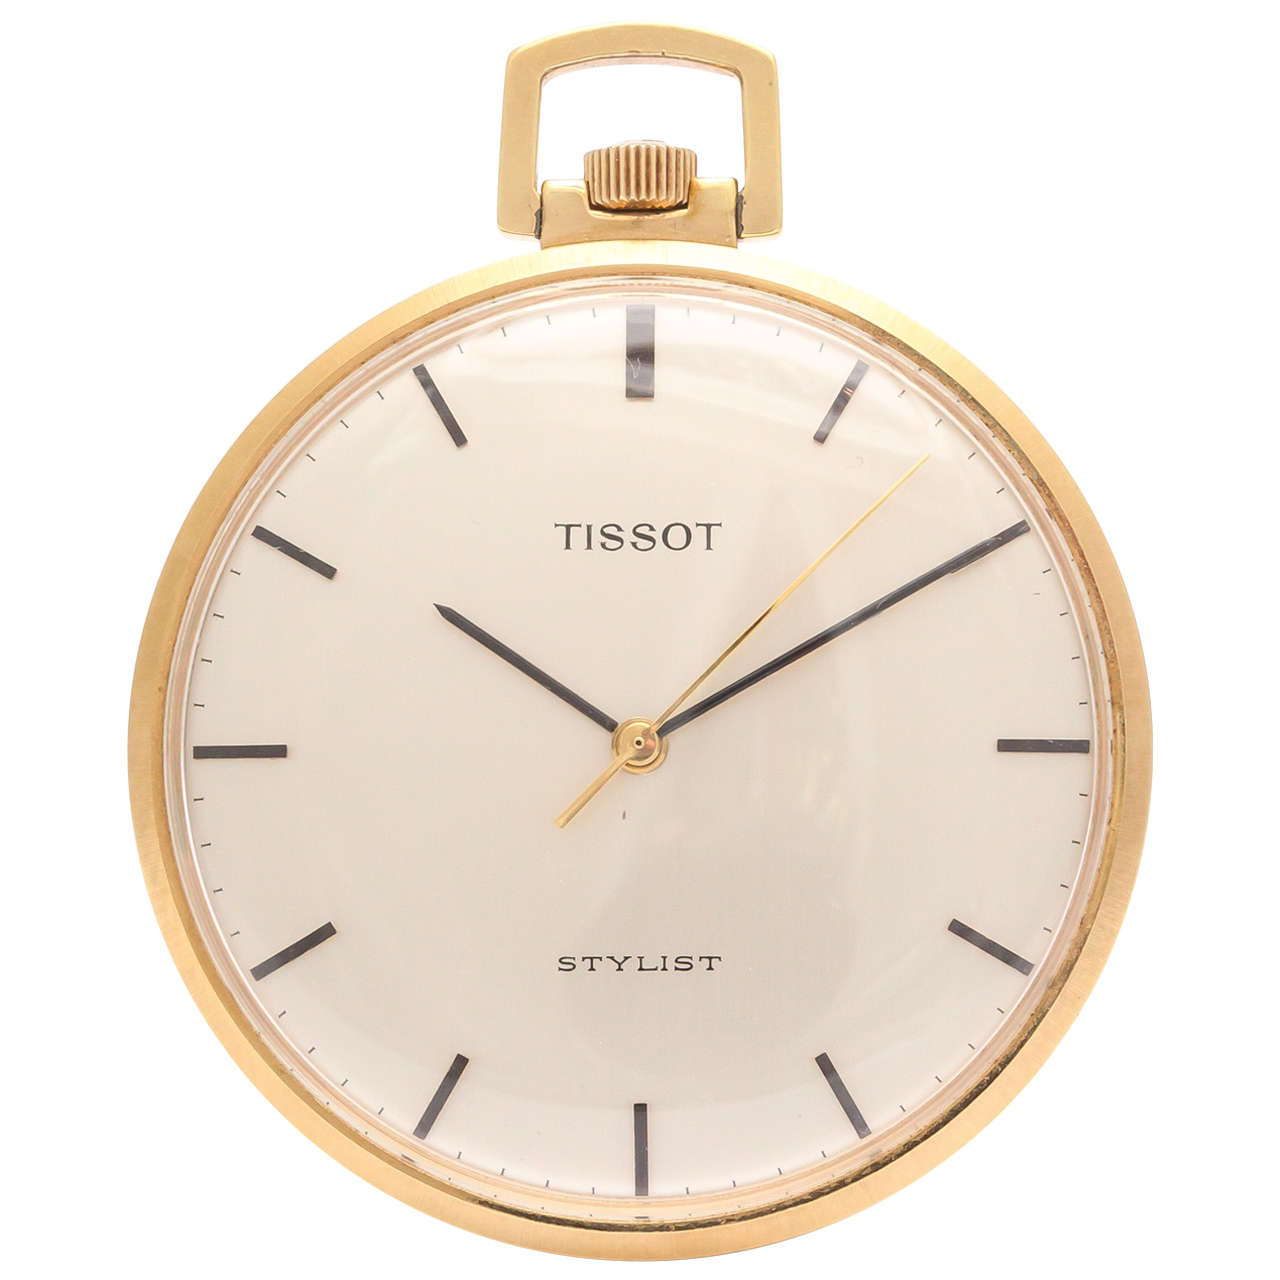 Tissot Yellow Gold Open Faced Stylist Pocket Watch circa 1950s